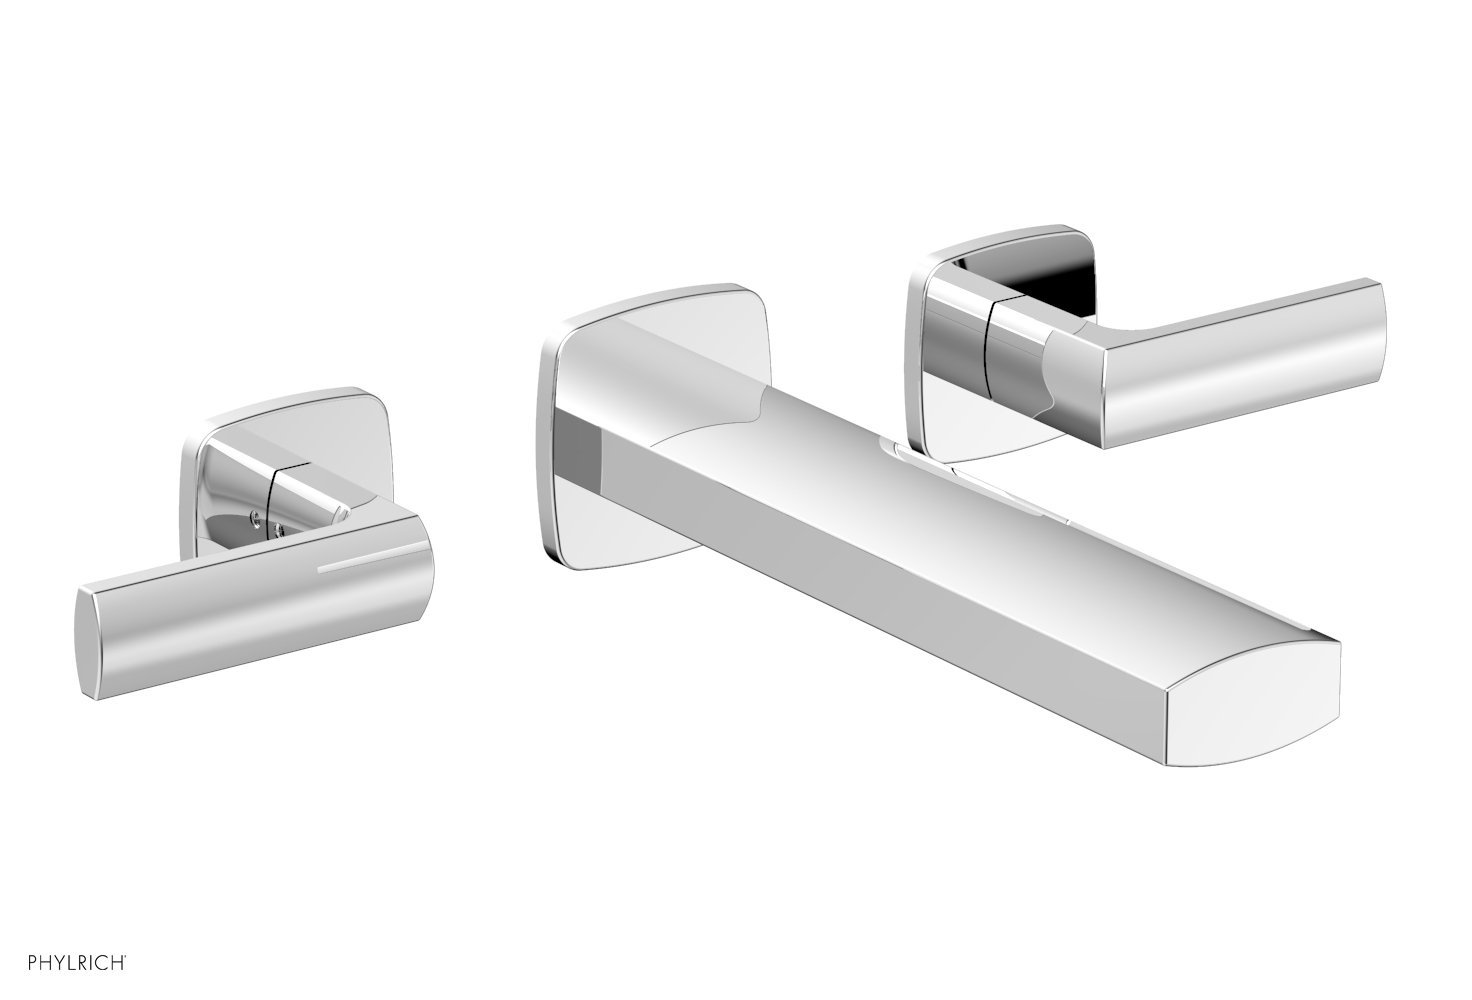 Phylrich 181-12-026 RADI Wall Lavatory Set - Lever Handles - Polished Chrome